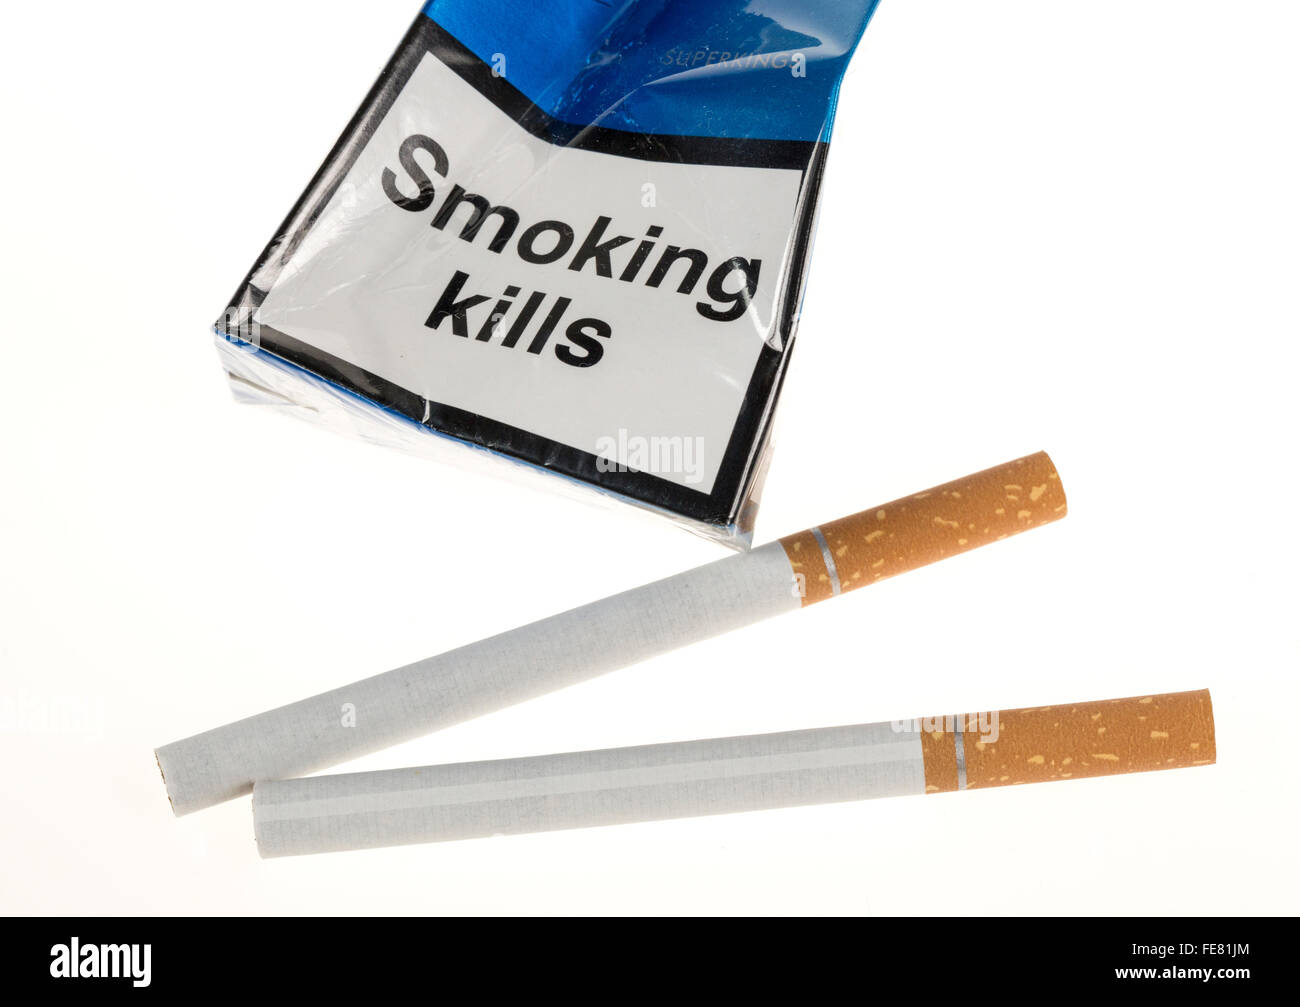 Smoking kills label on crushed cigarette packet with two cigarettes - Stock Image